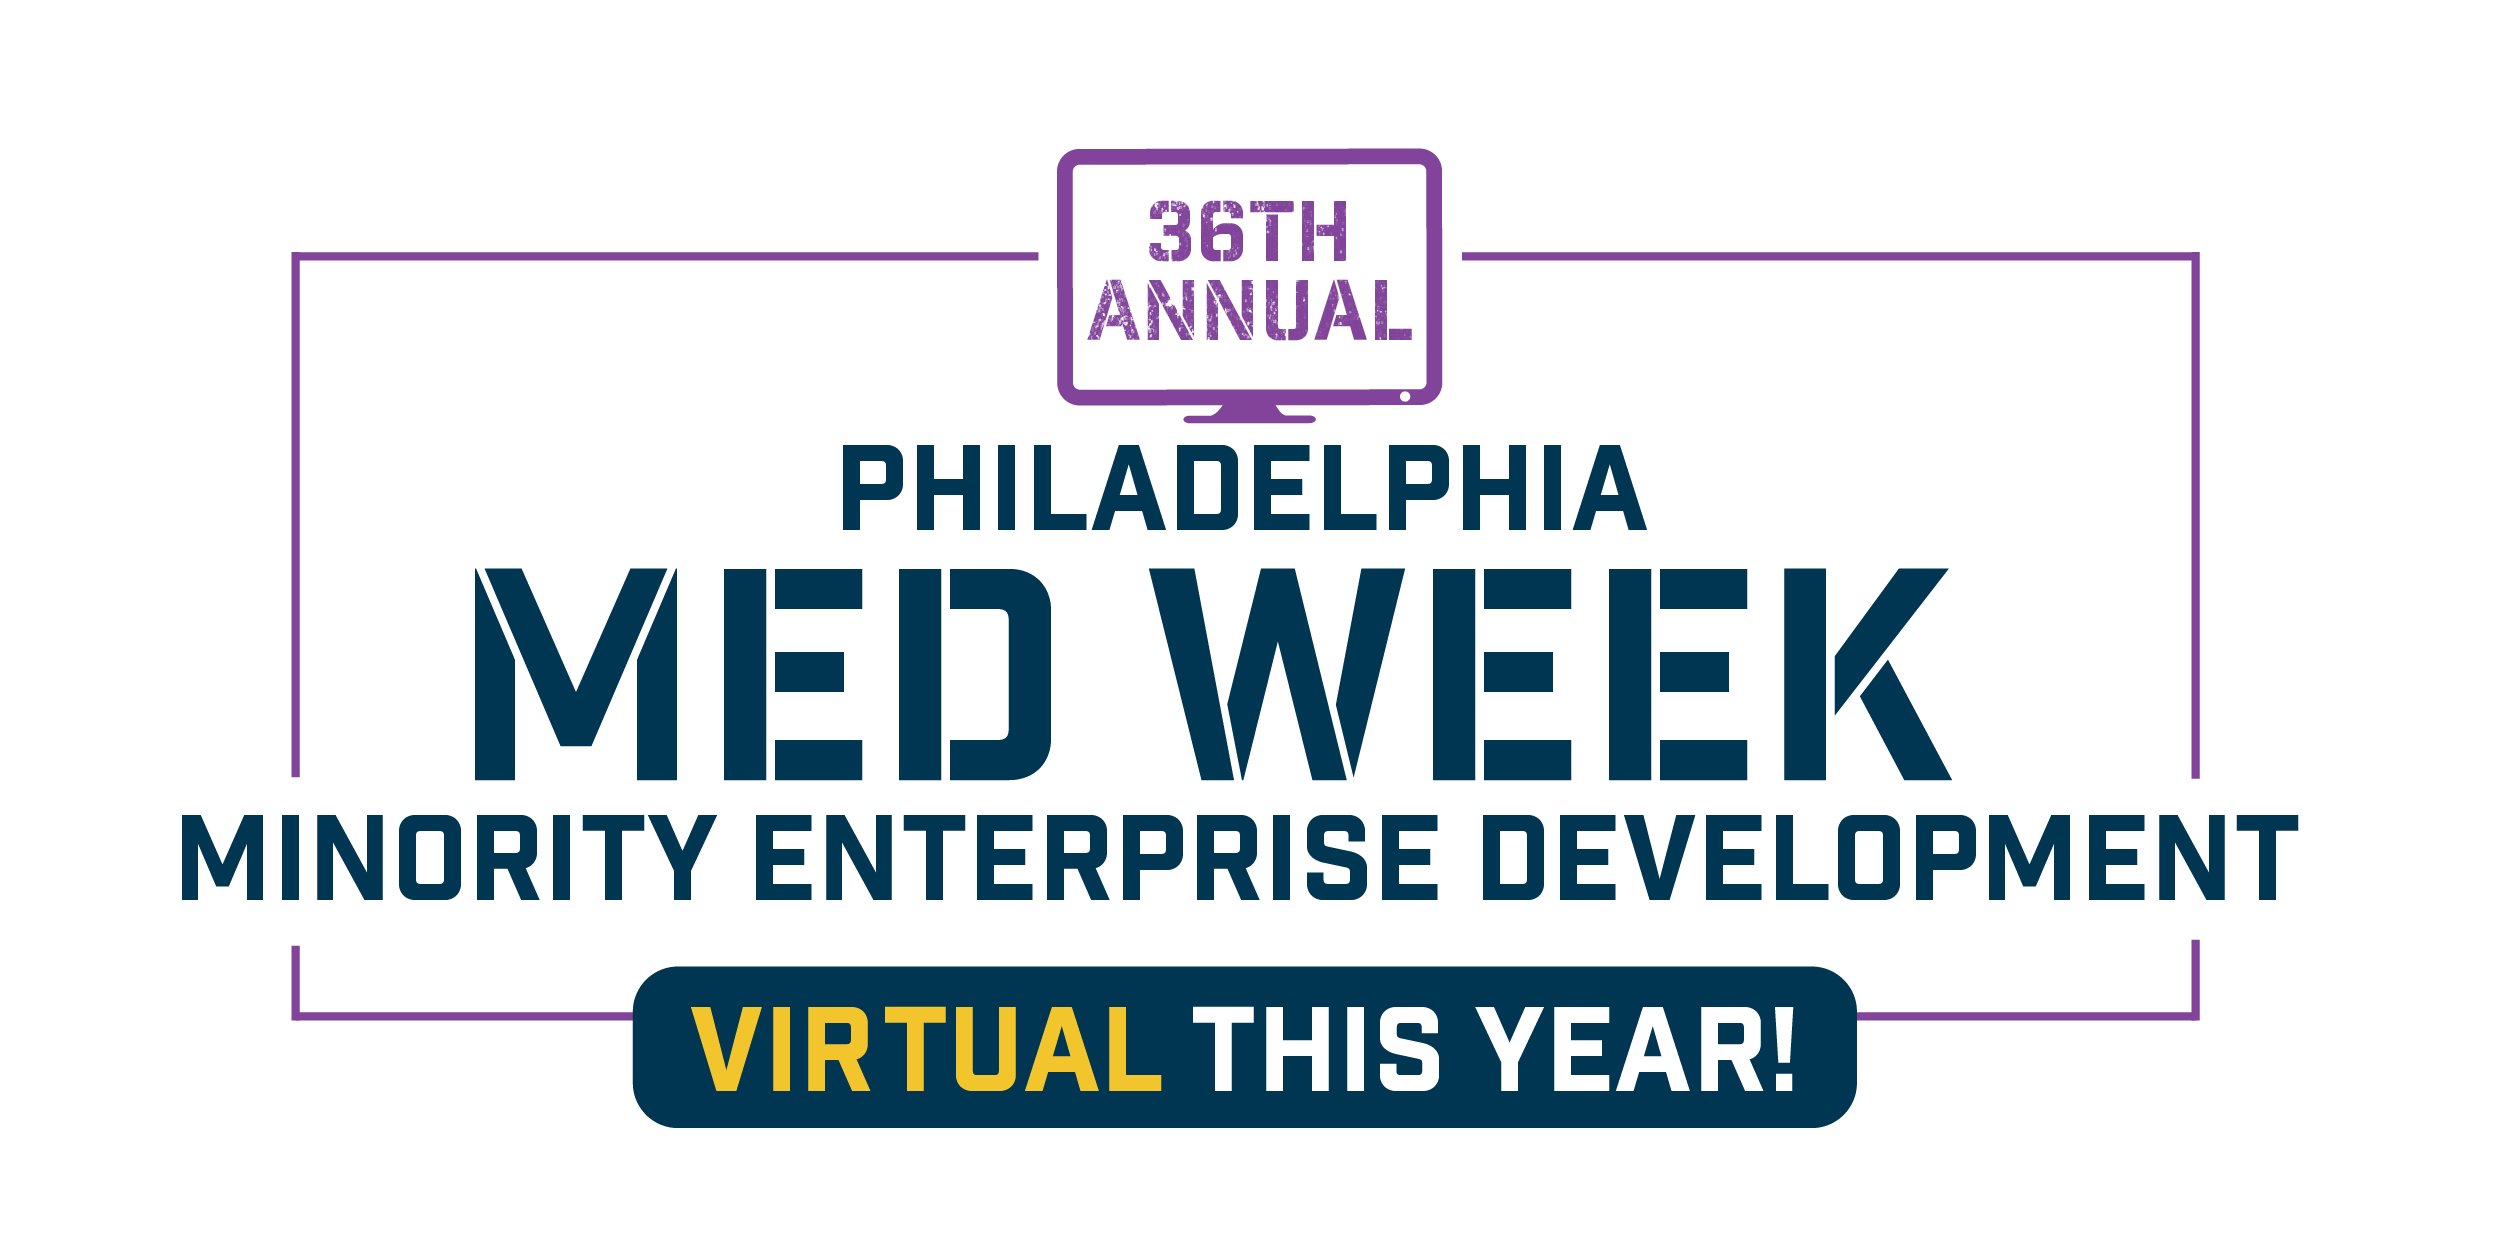 Med week logo 36 annual Virtual this year